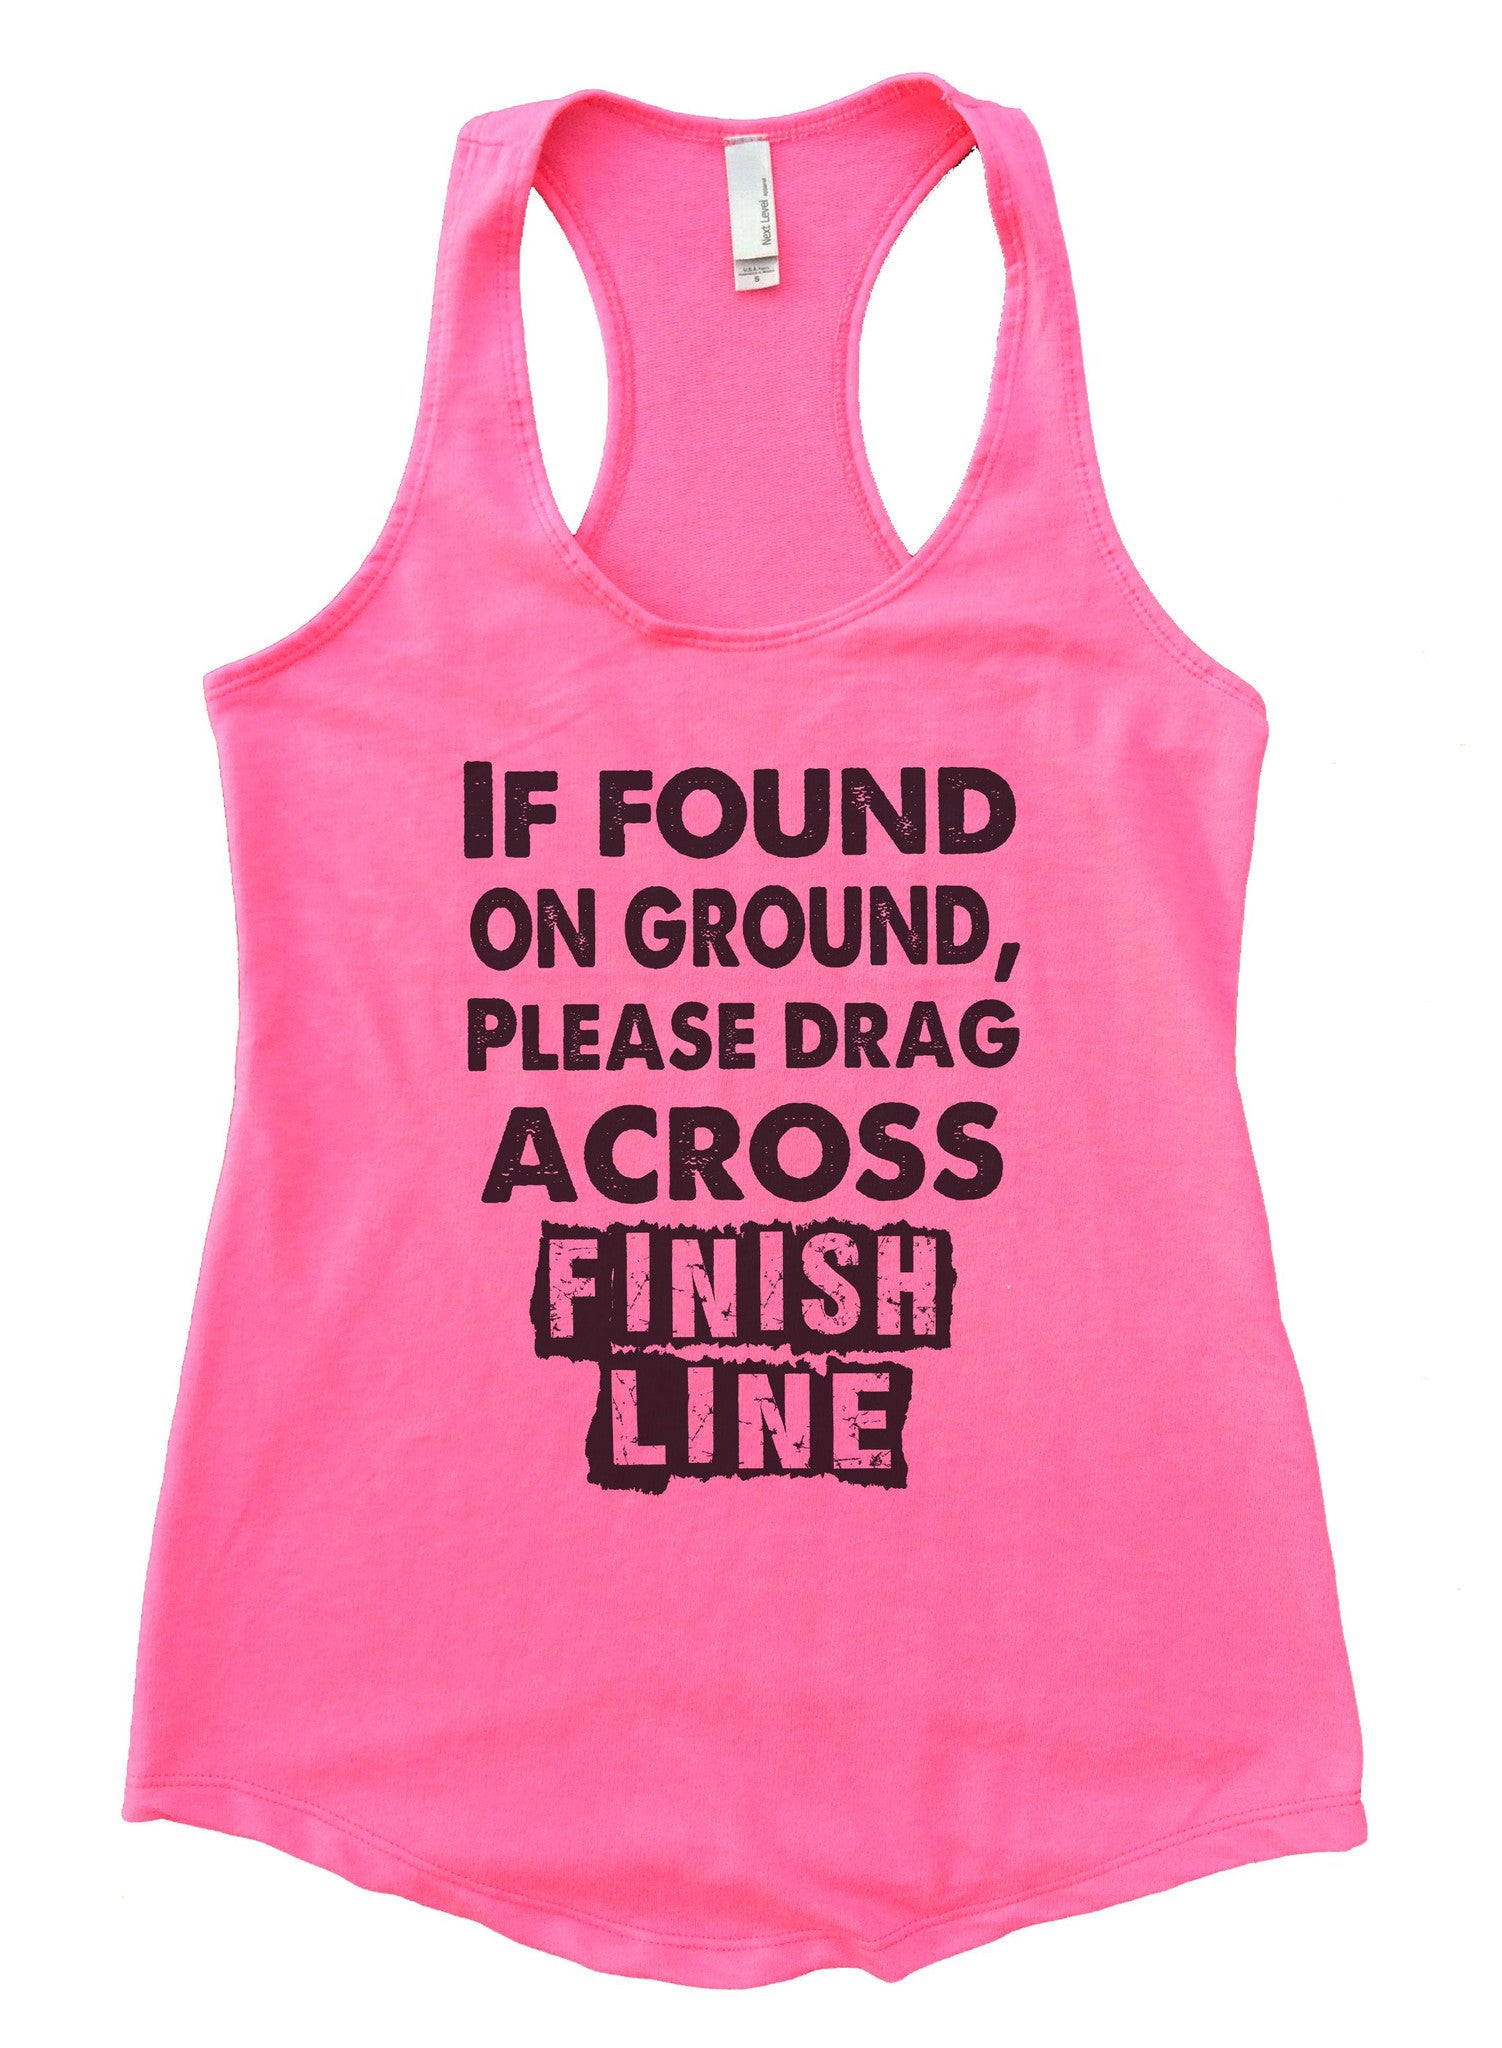 If Found On Ground, Please Drag Across Finish Line Womens Workout Tank Top F667 - Funny Shirts Tank Tops Burnouts and Triblends  - 3